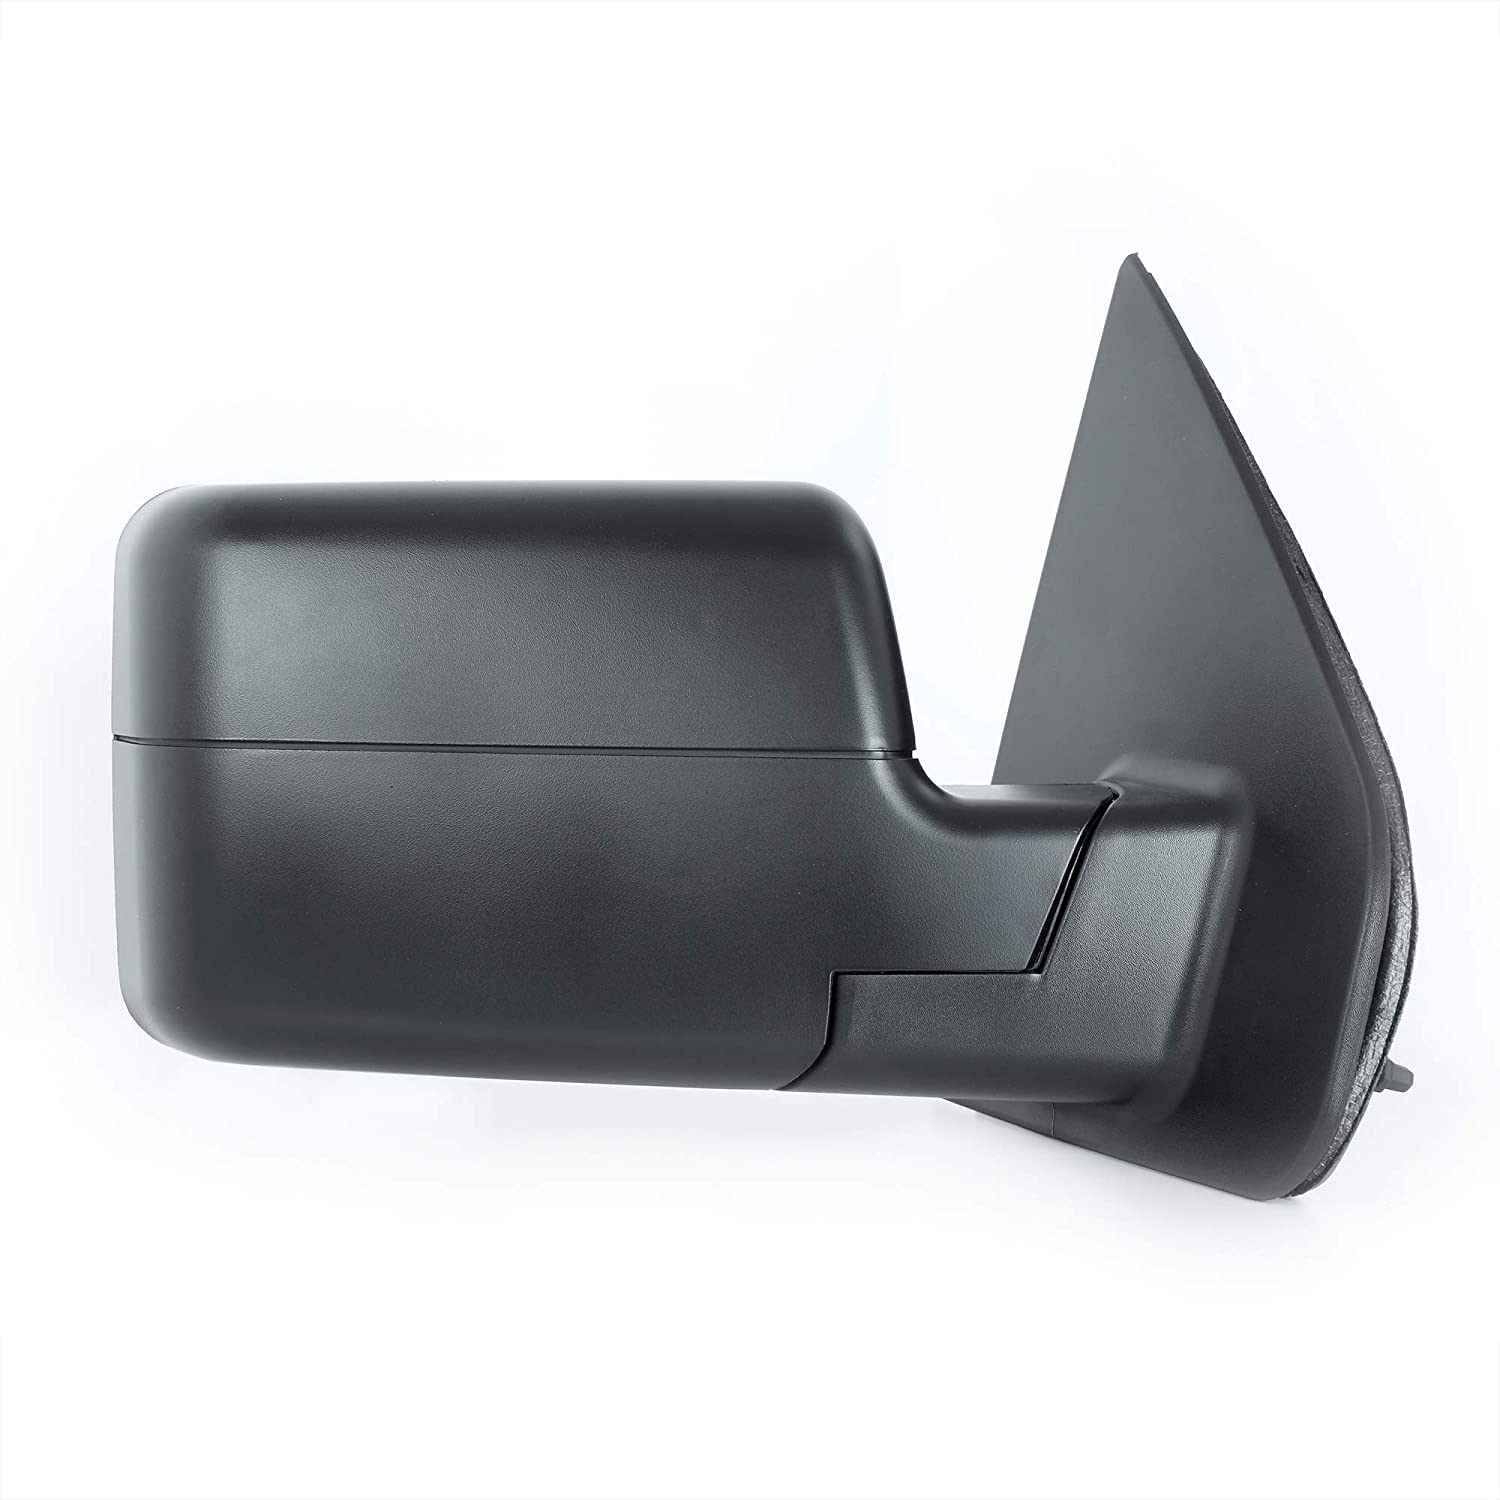 Spieg FO1321233 Side Finally popular brand Mirror Recommendation Compatible with 2004 Ford - F150 200